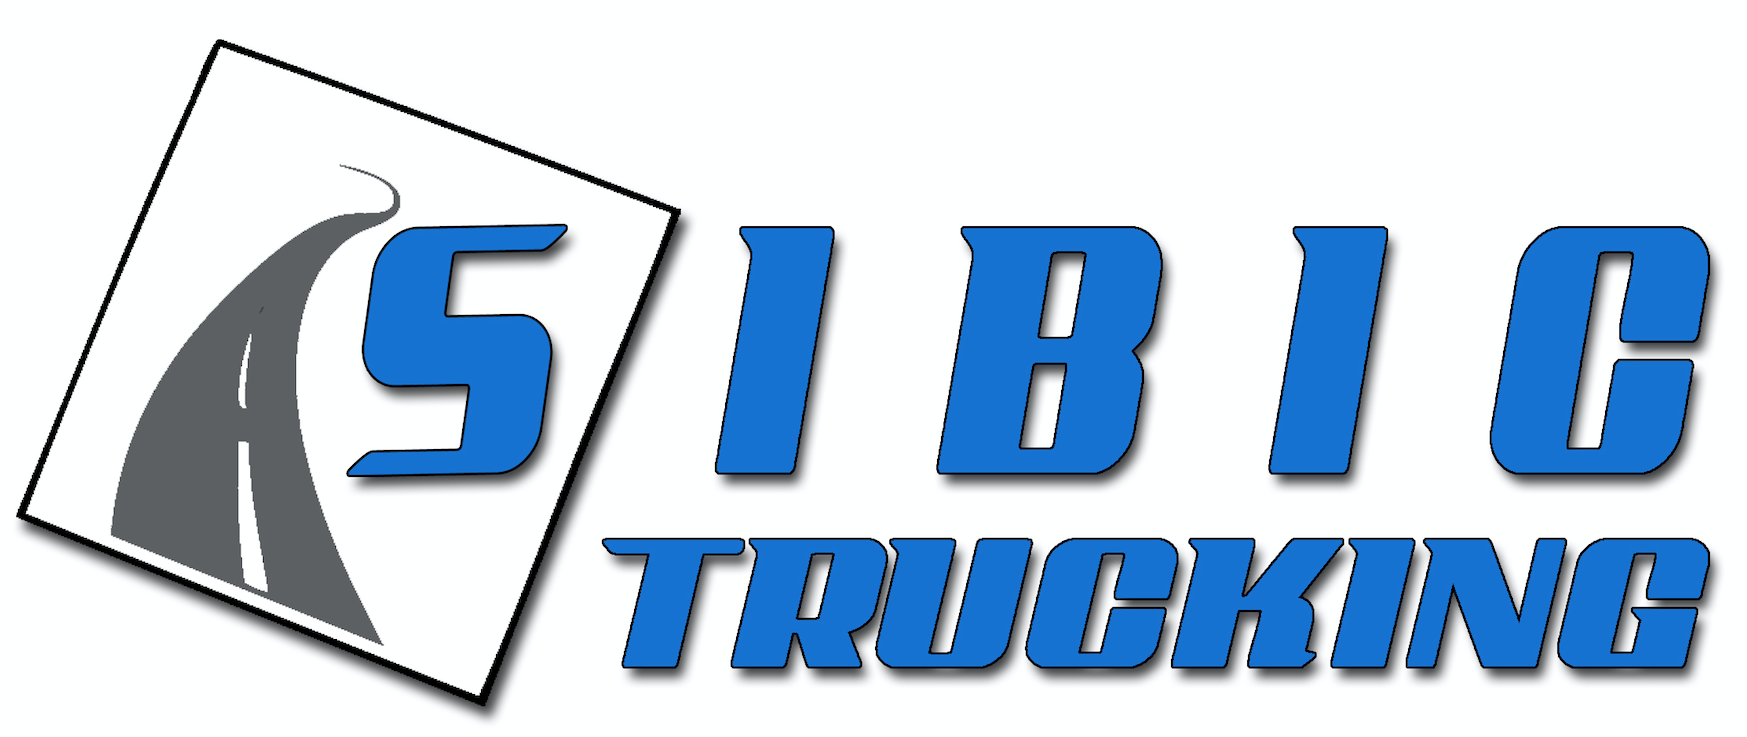 Lunch Sponsor - Sibic Trucking - Logo